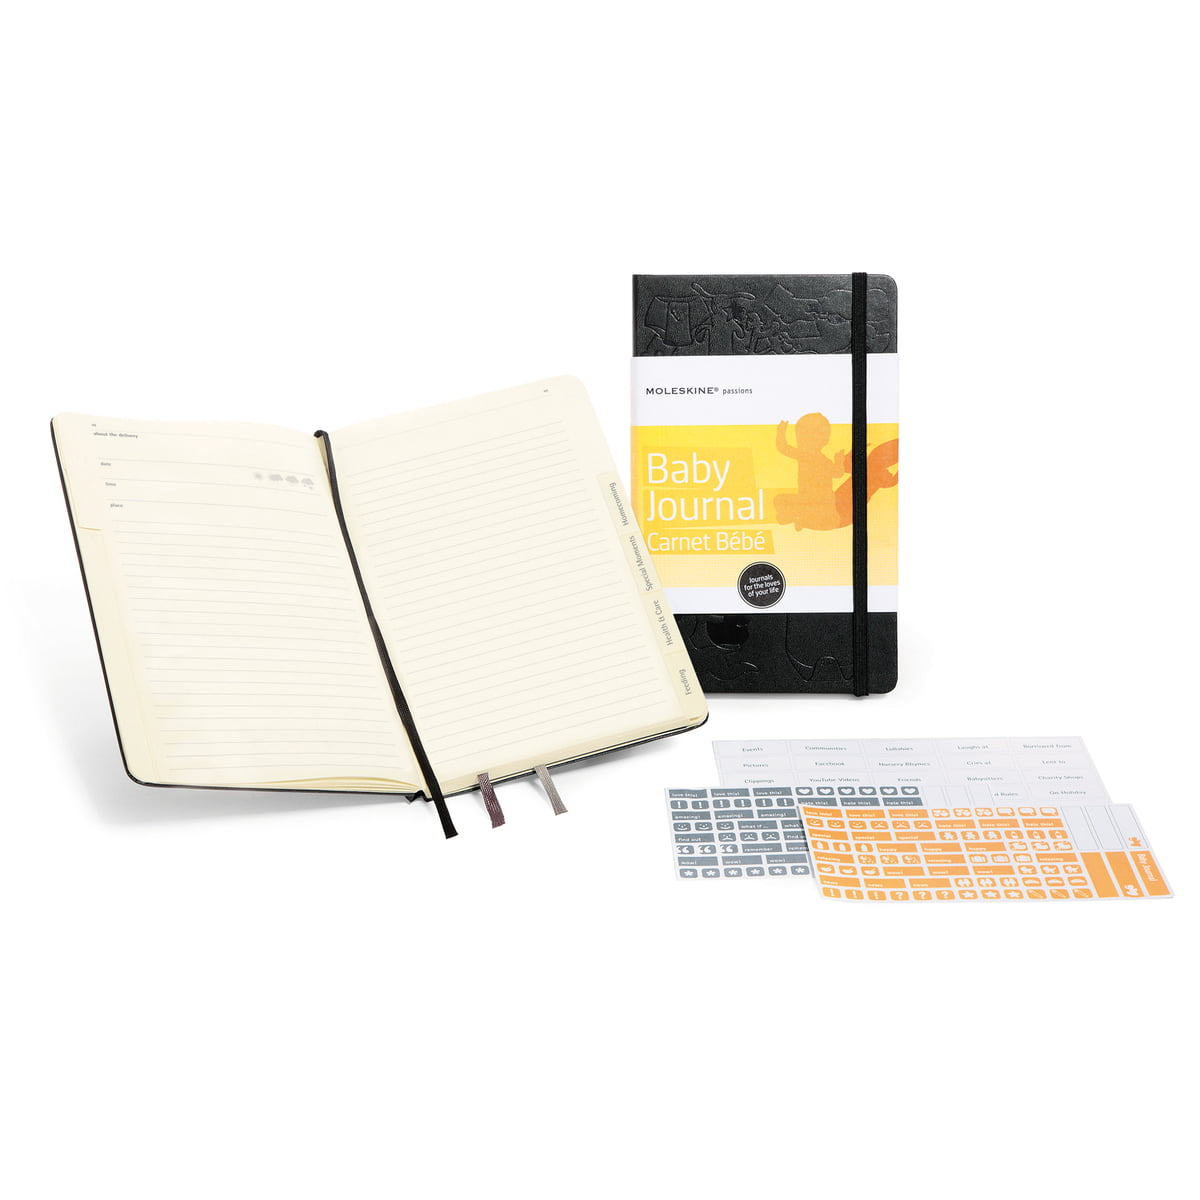 fa4d36303c47f0 The Moleskine Passion Journals in the home design shop